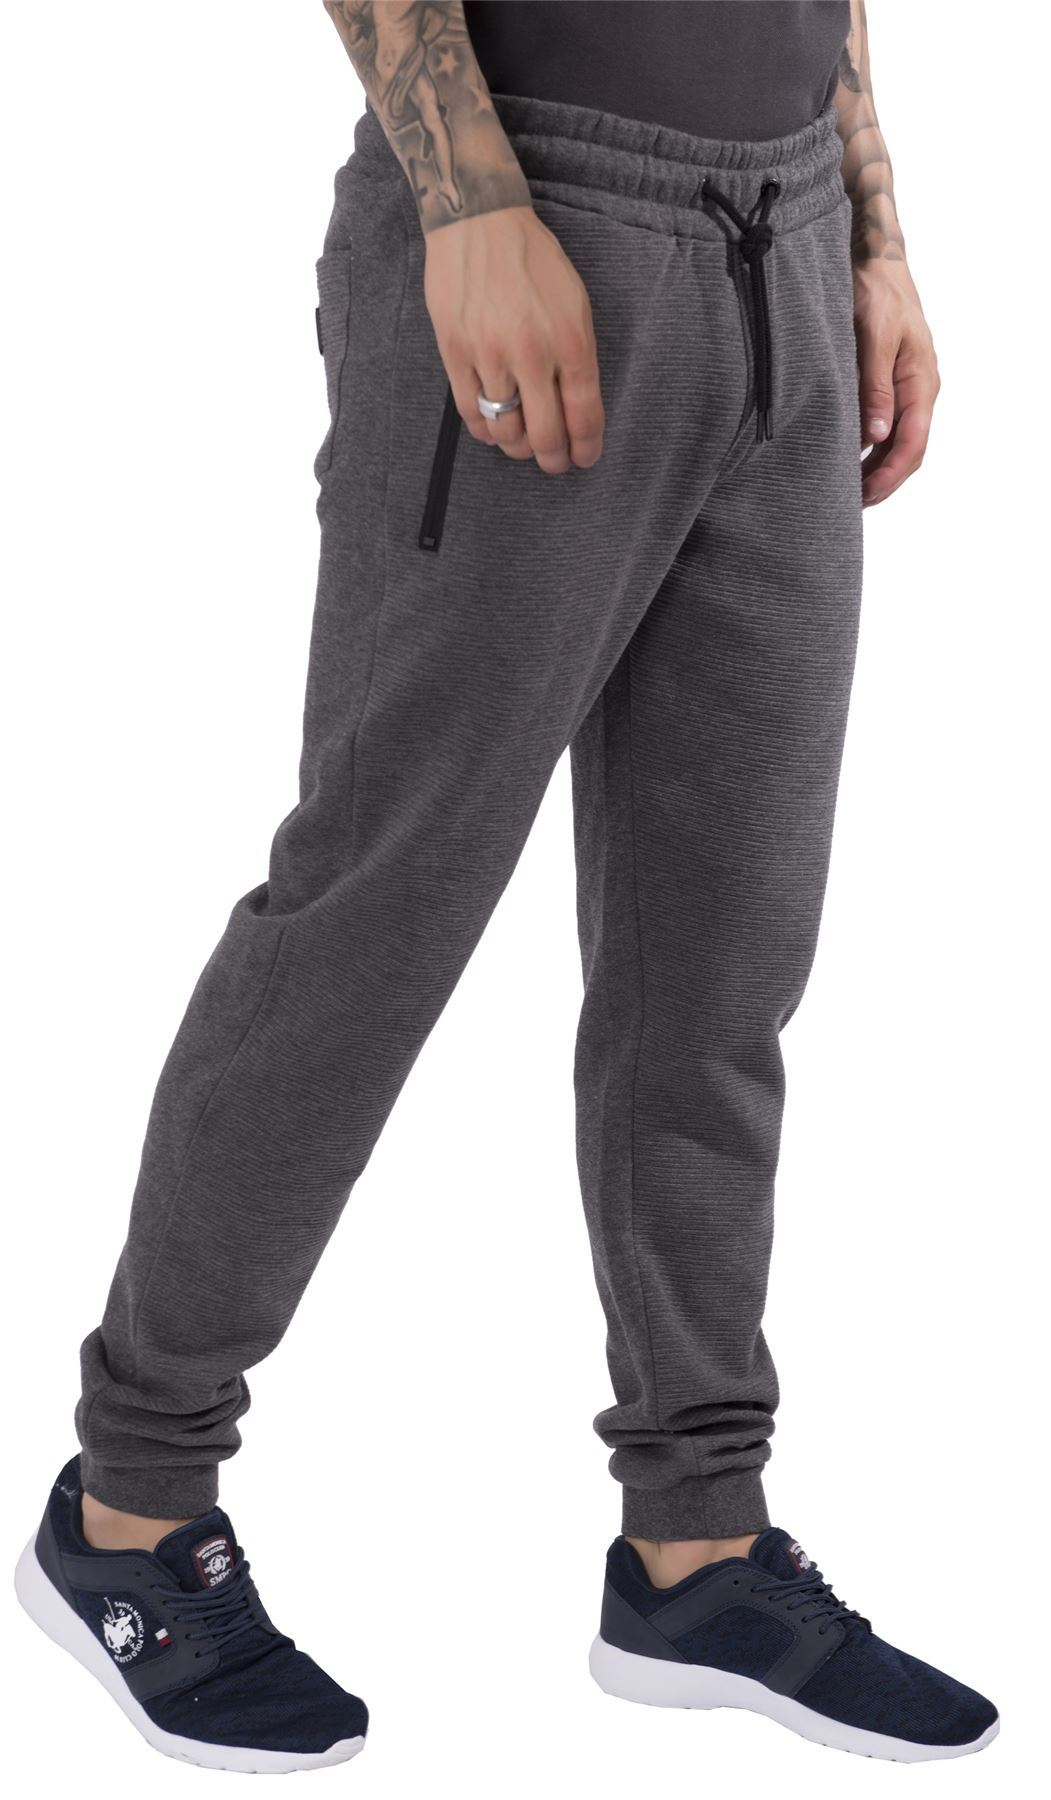 Frank & Eileen Tee Lab Cotton Fleece Cuffed Jogger Sweatpants Details Frank and Eileen Tee Lab sweatpants in cotton fleece. Drawstring waistband. Side slip pockets with frayed edges.